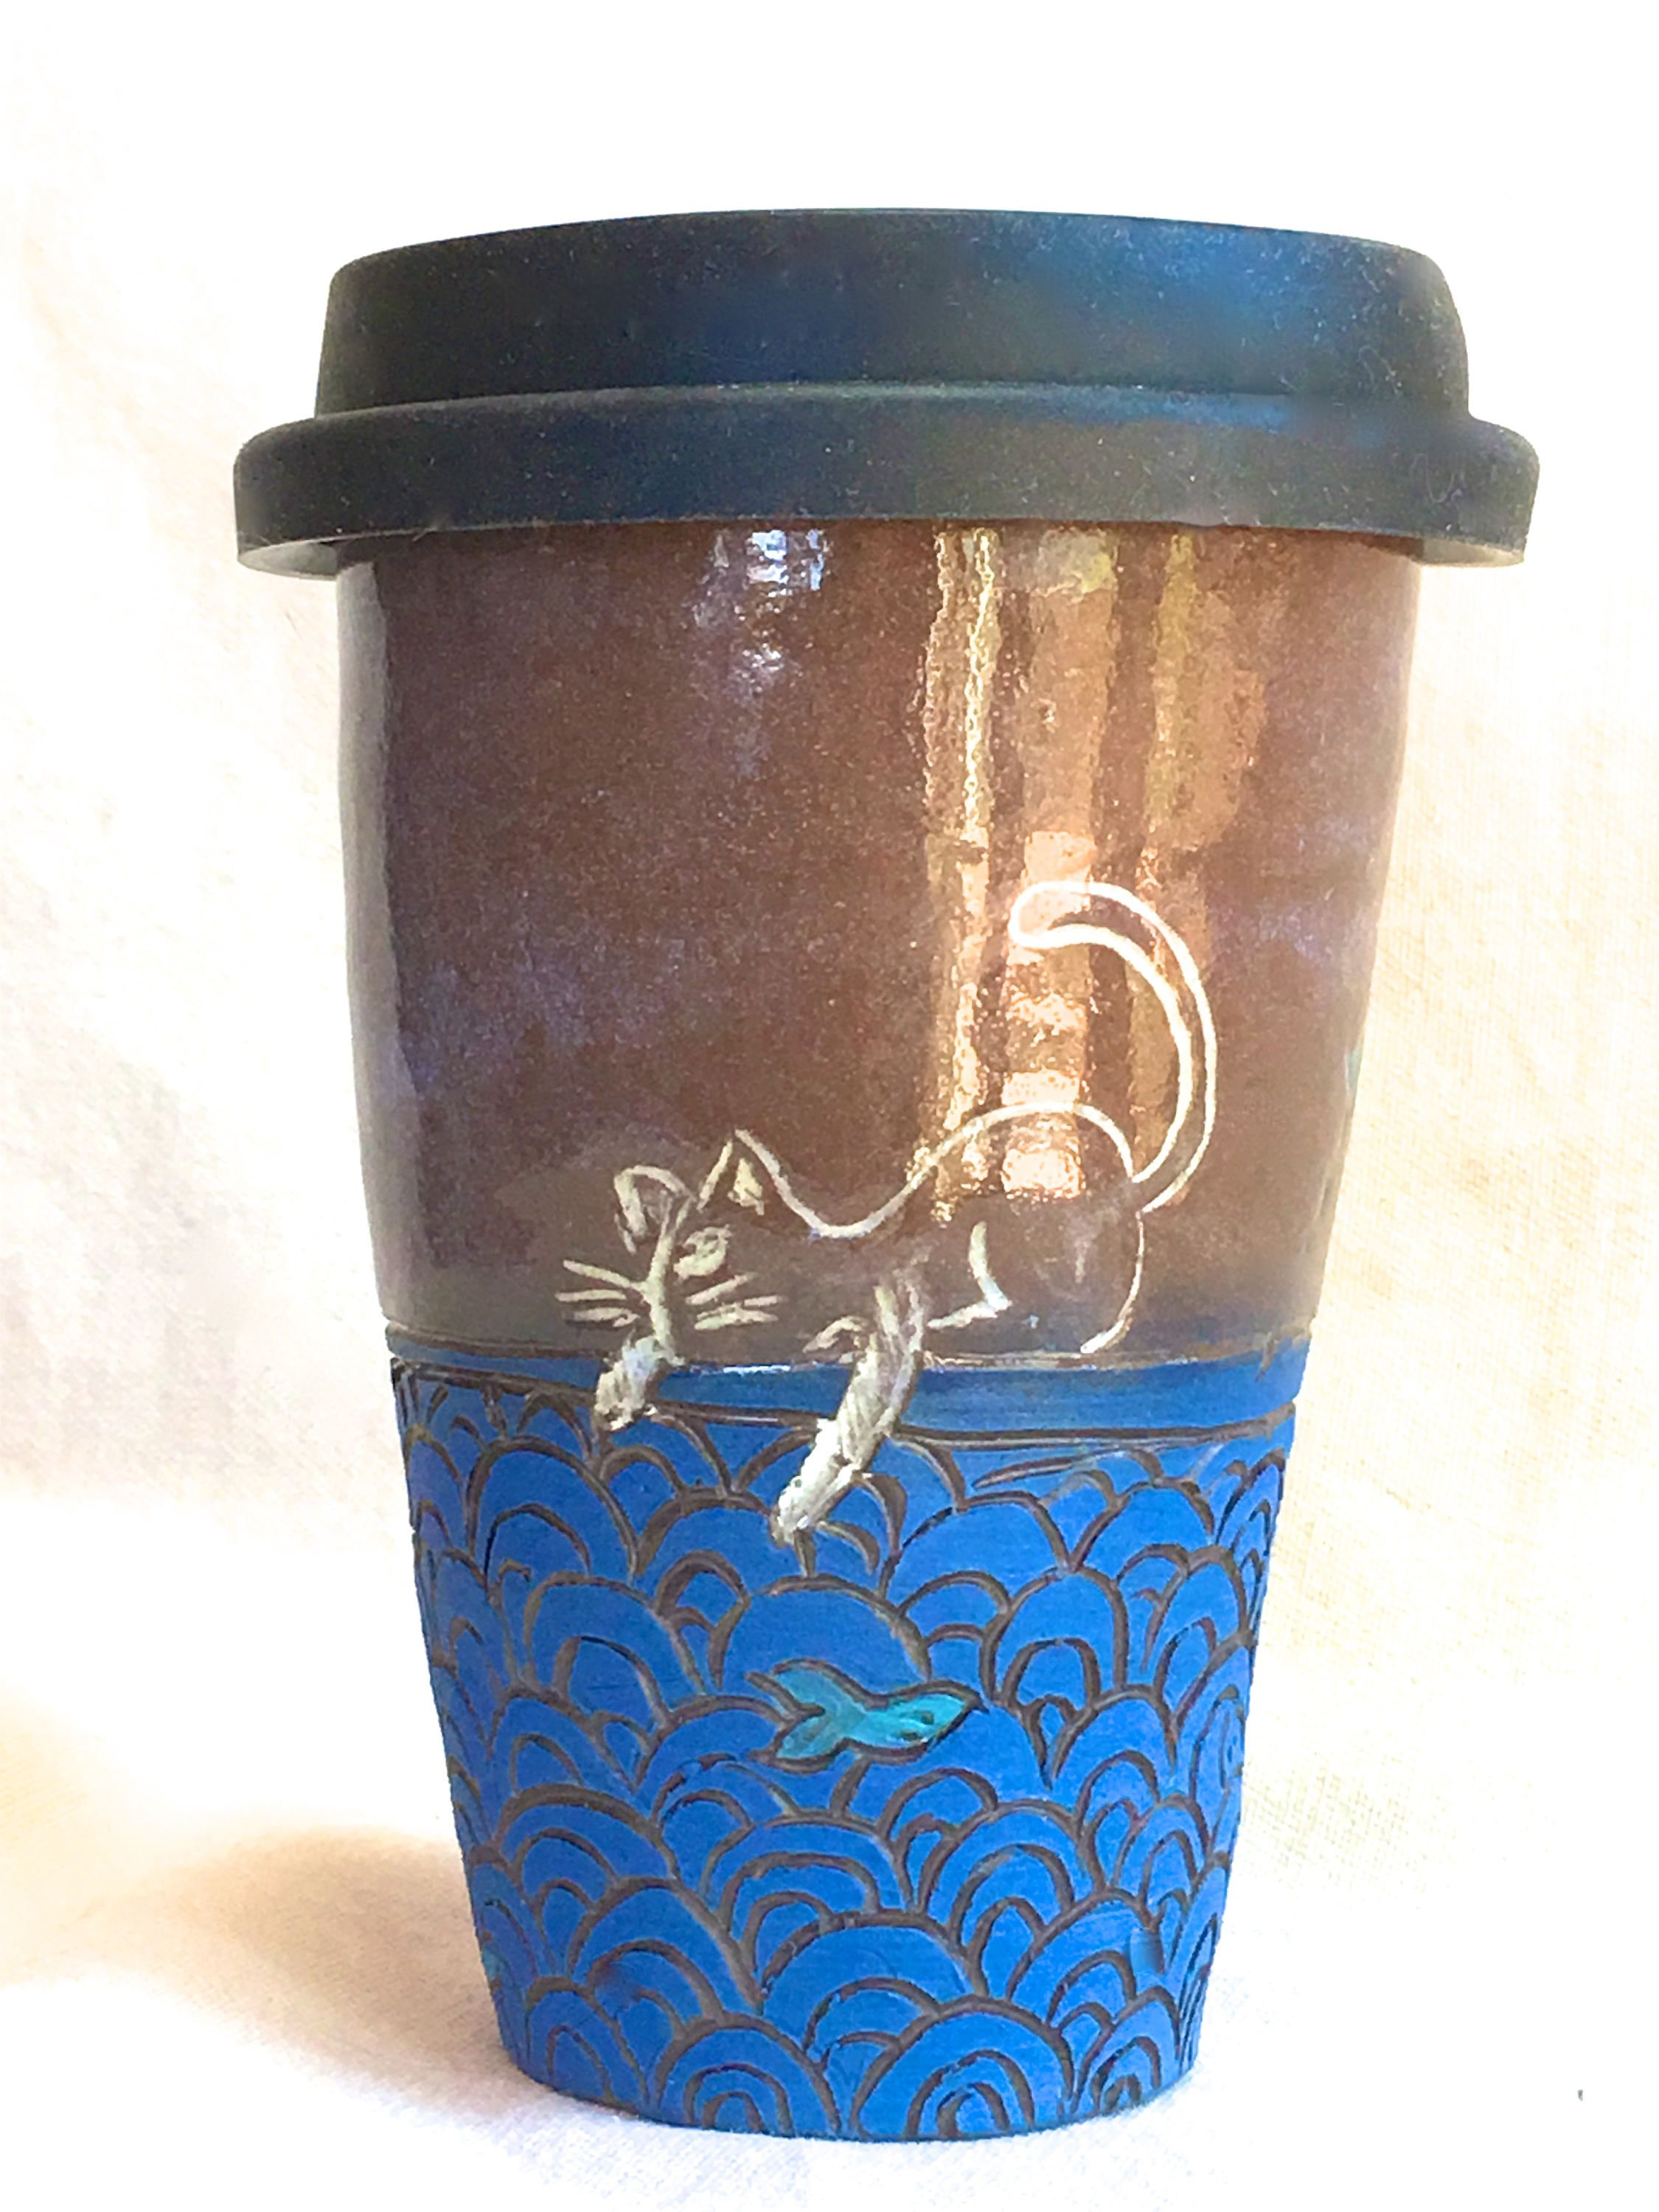 2 Cats Travel Mug Small Cup 8 Oz Ceramic With Black Silicone Lidded Coffee Hand Made Pottery Studio Second Eco By Funnfiber On